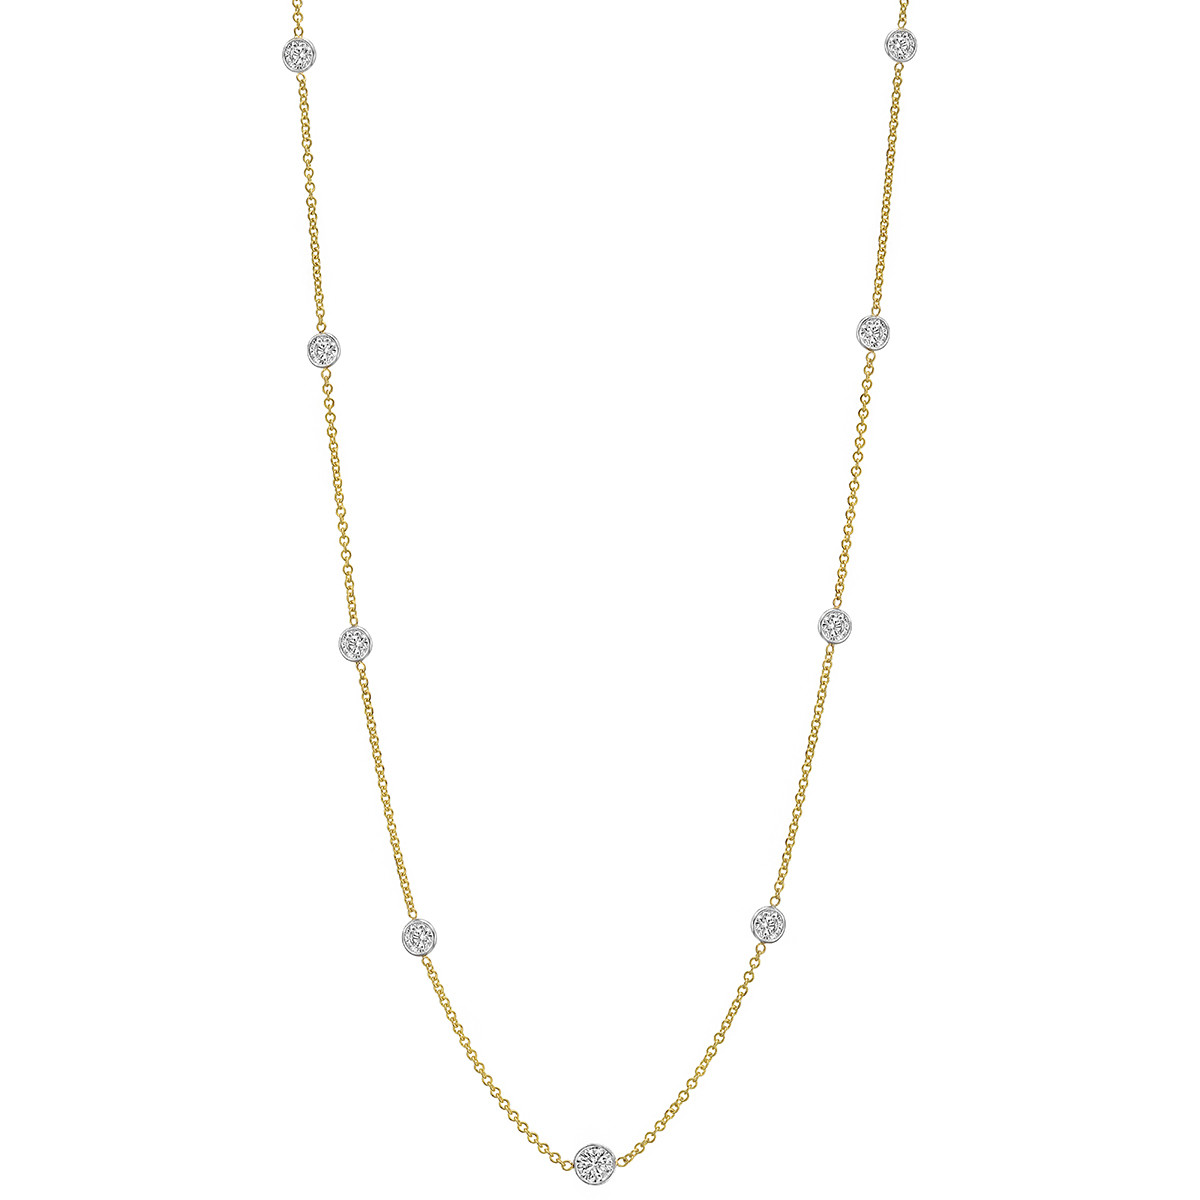 Bezel-Set Round Brilliant Diamond Chain Necklace